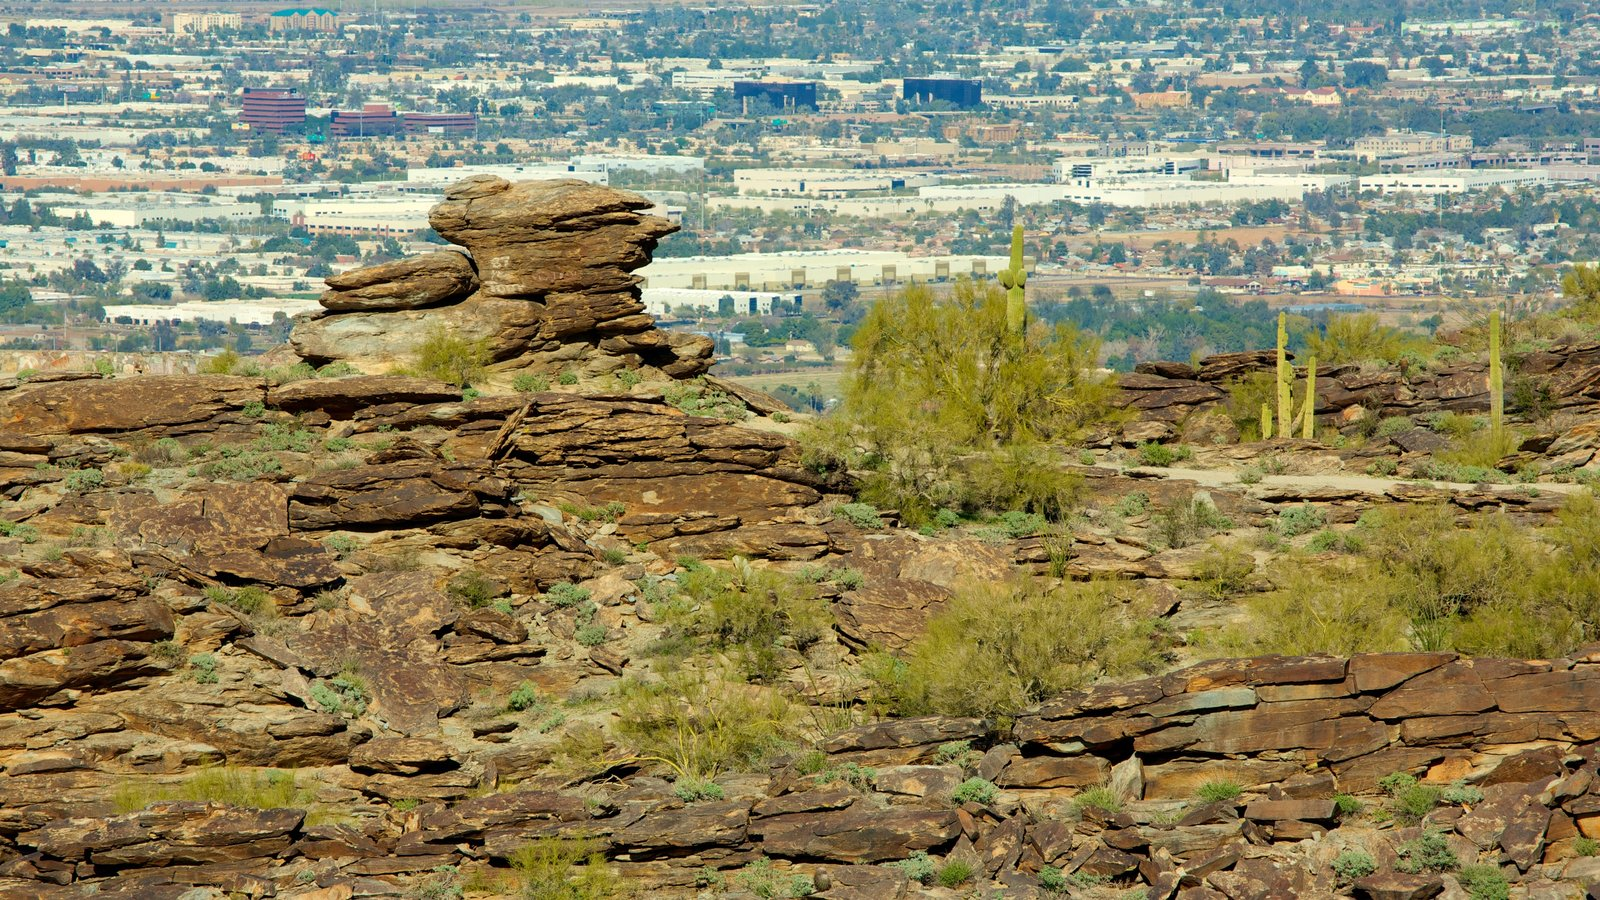 Phoenix which includes a gorge or canyon, landscape views and a city